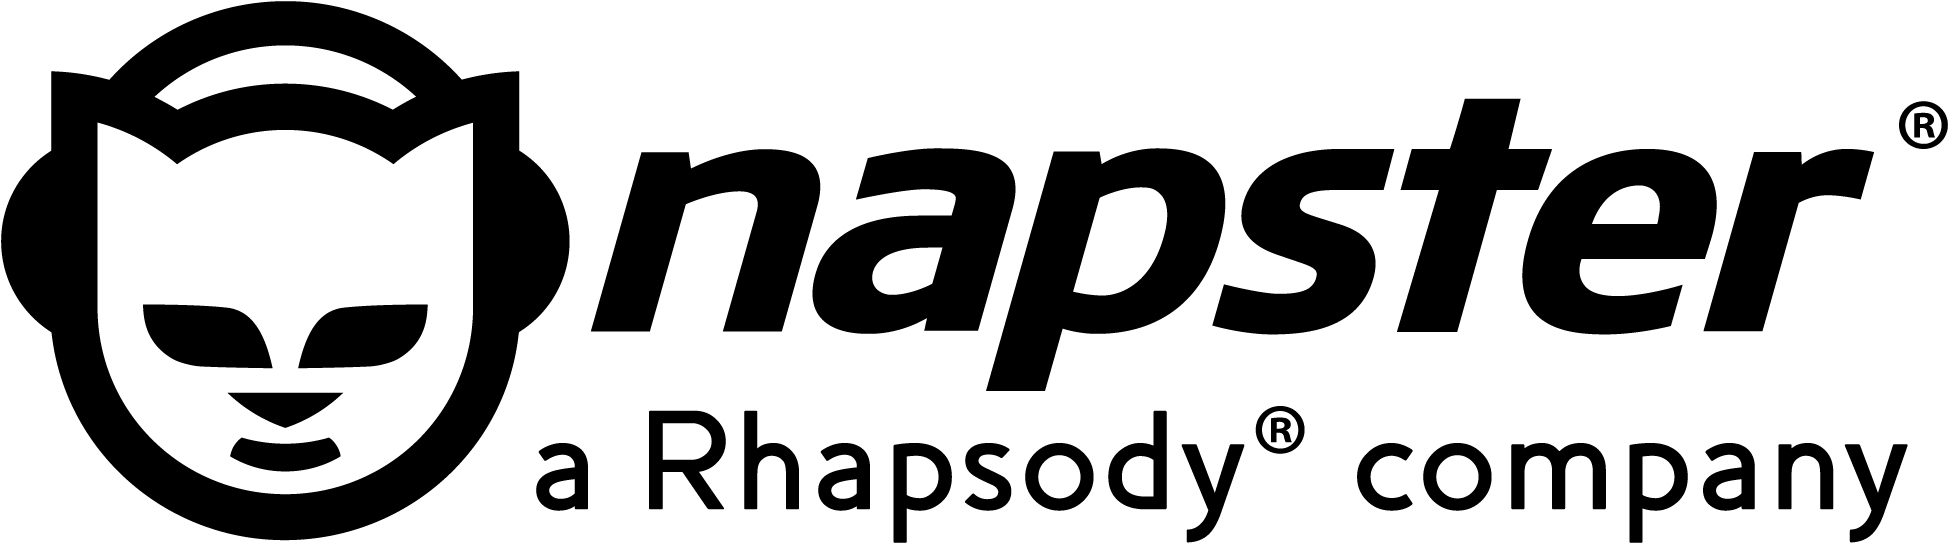 Rhapsody Logo - Napster Vector, Transparent background PNG HD thumbnail